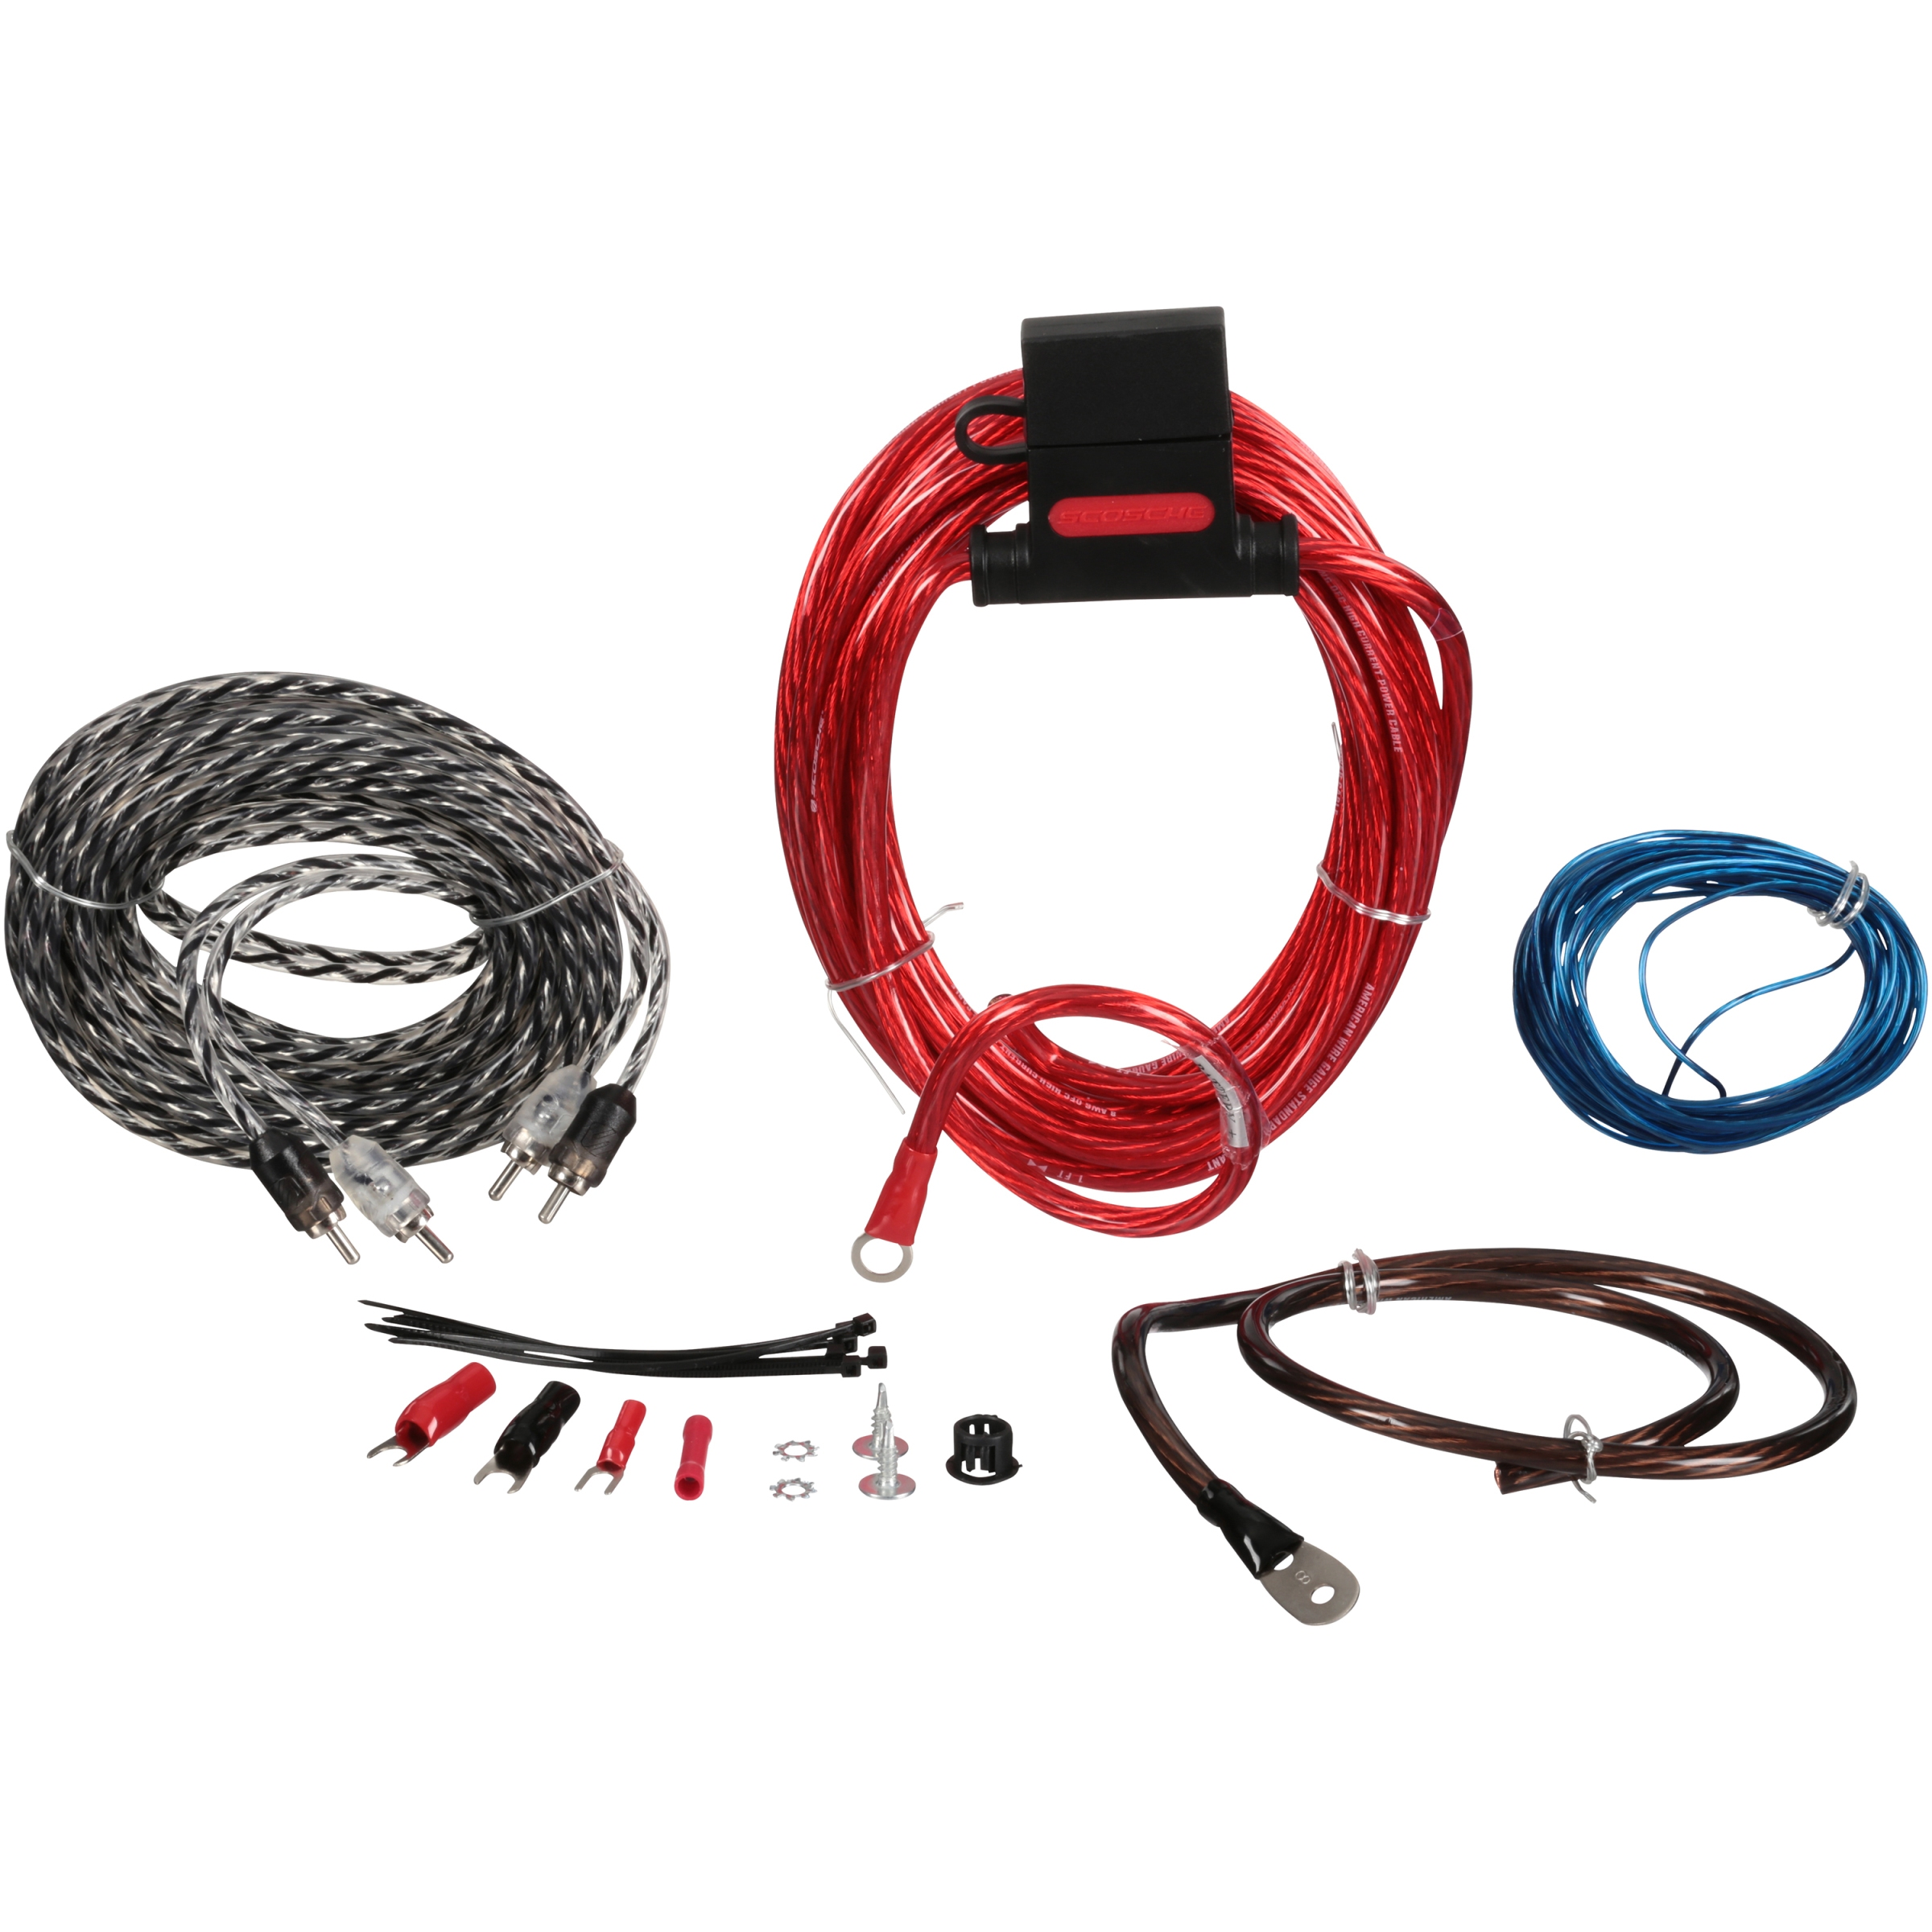 Scosche Wiring Harness Problems Diagram And Ebooks Radio 680 Watt Max 400 Amp Kit 8 Pc Carded Pack Walmart Com Rh Diagrams For Ford